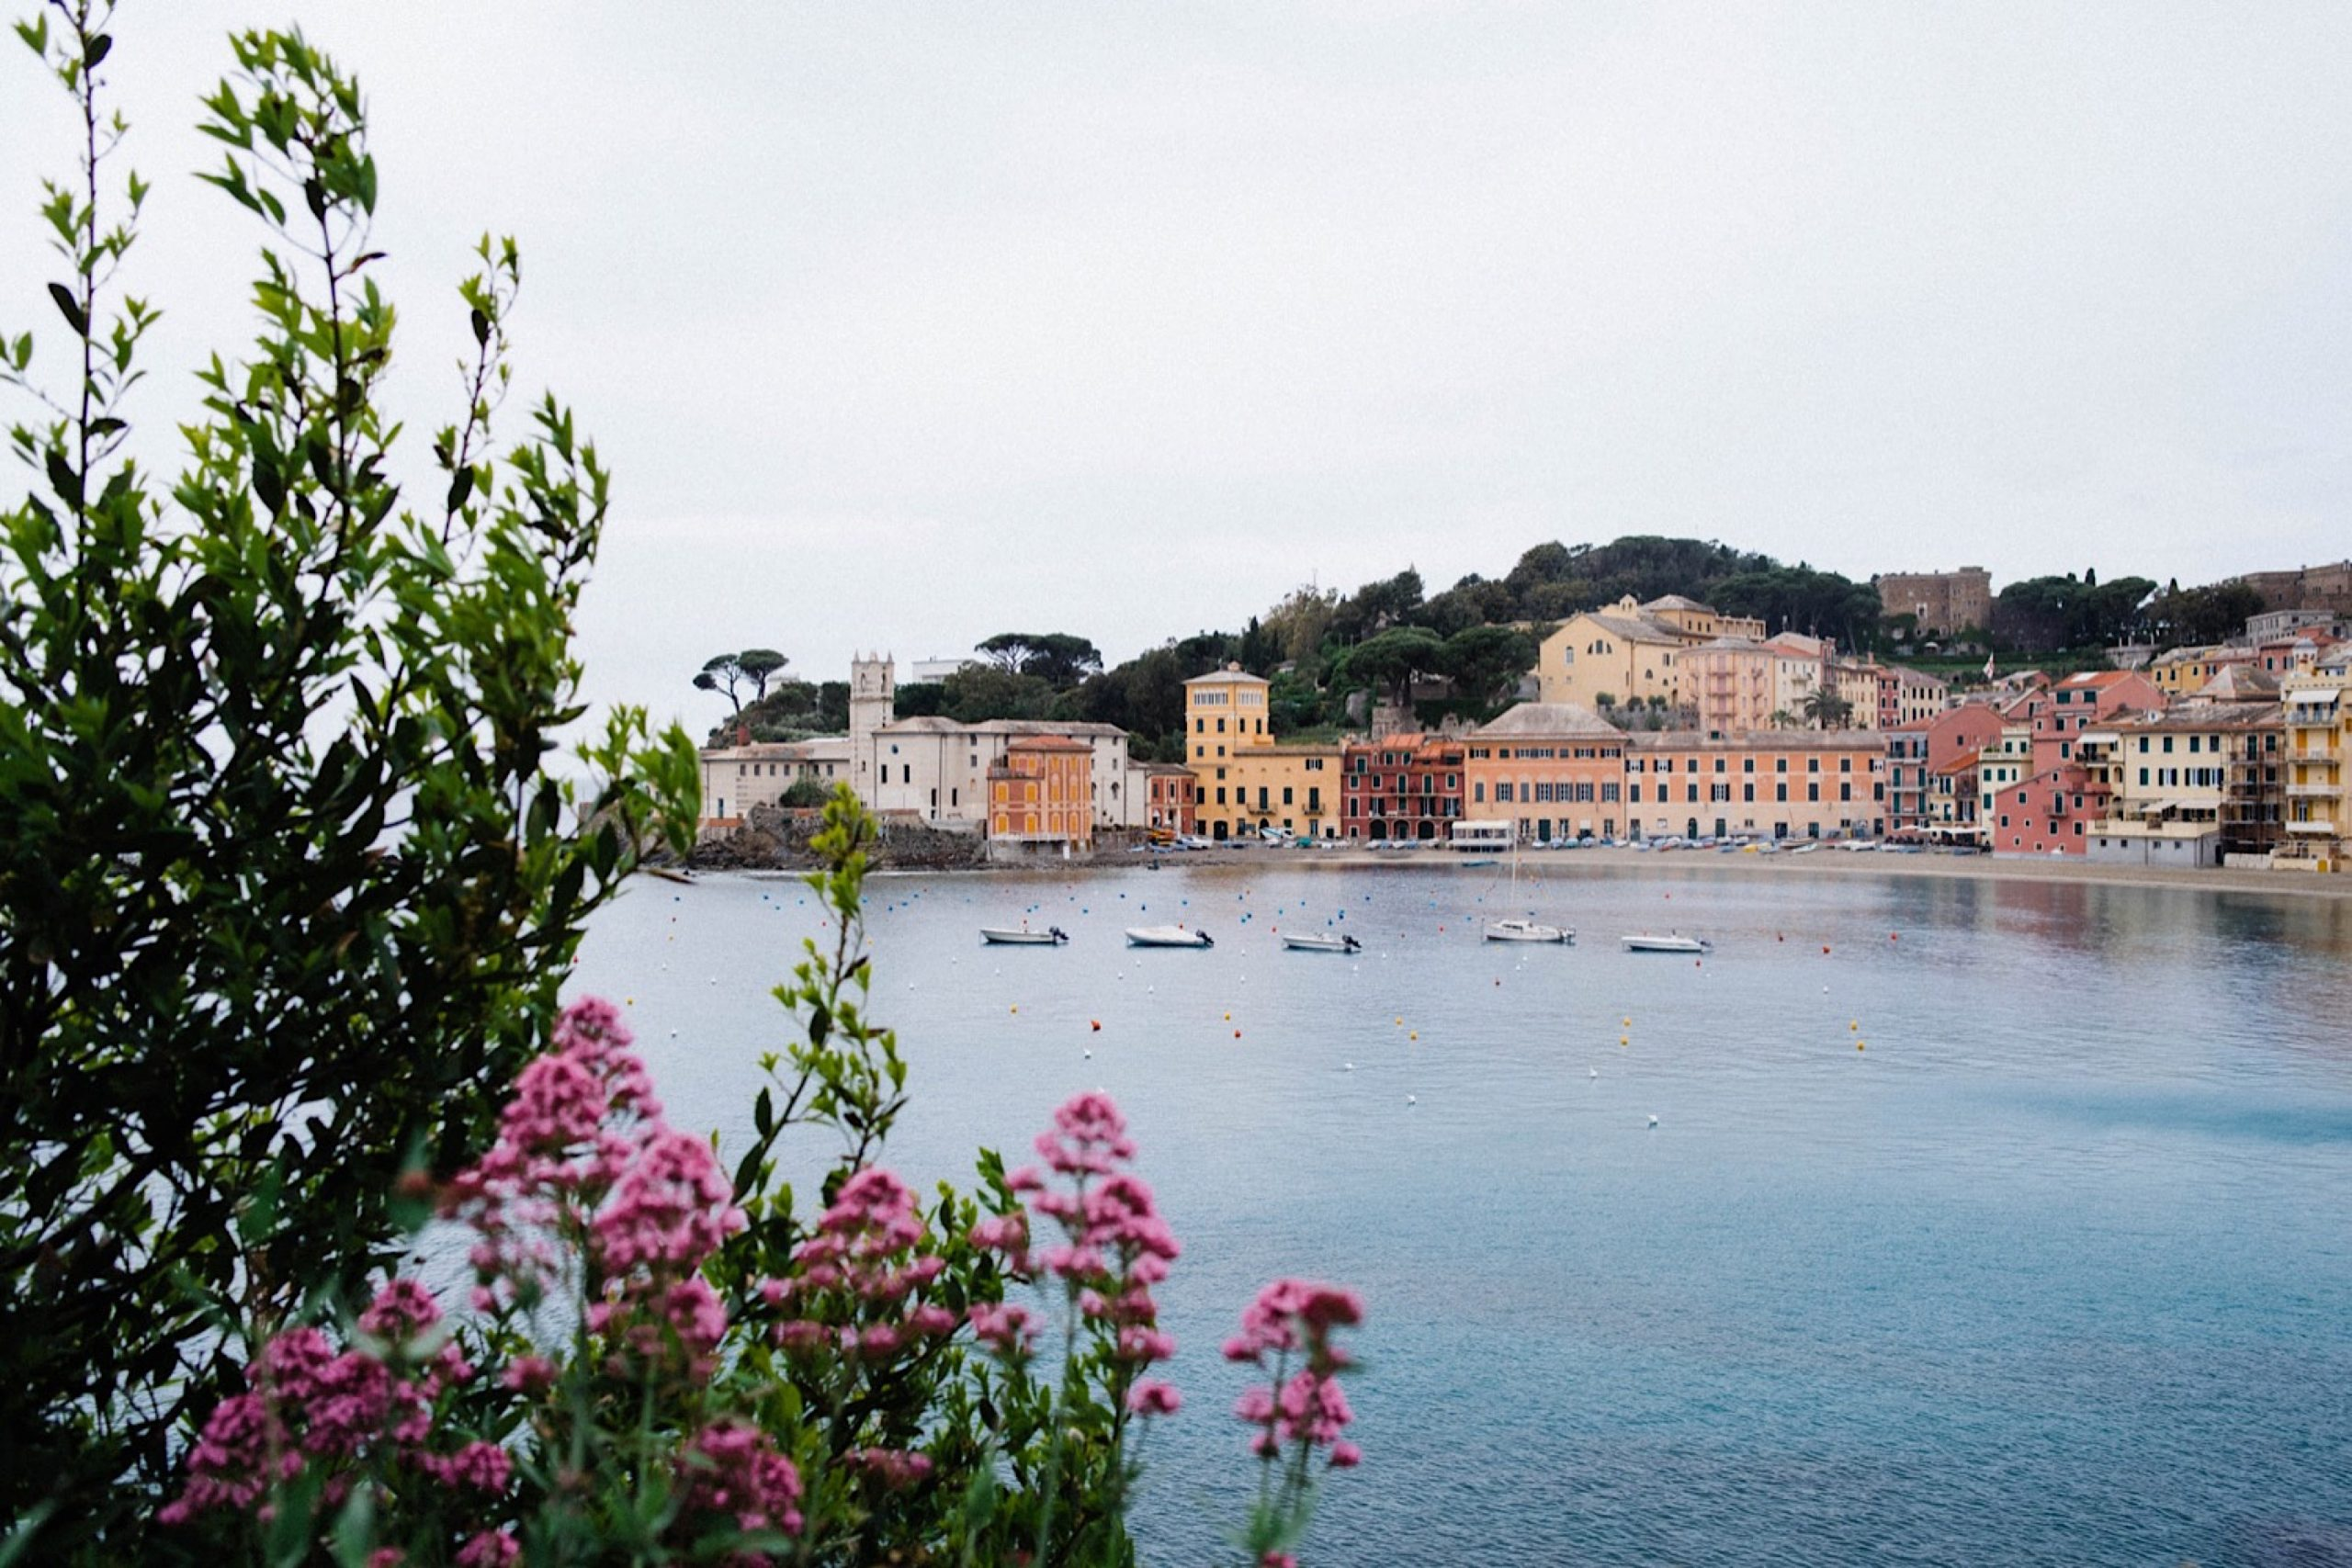 A landscape photo looking out over the Bay of Silence, taking during a Destination Wedding at the Italian Riviera.